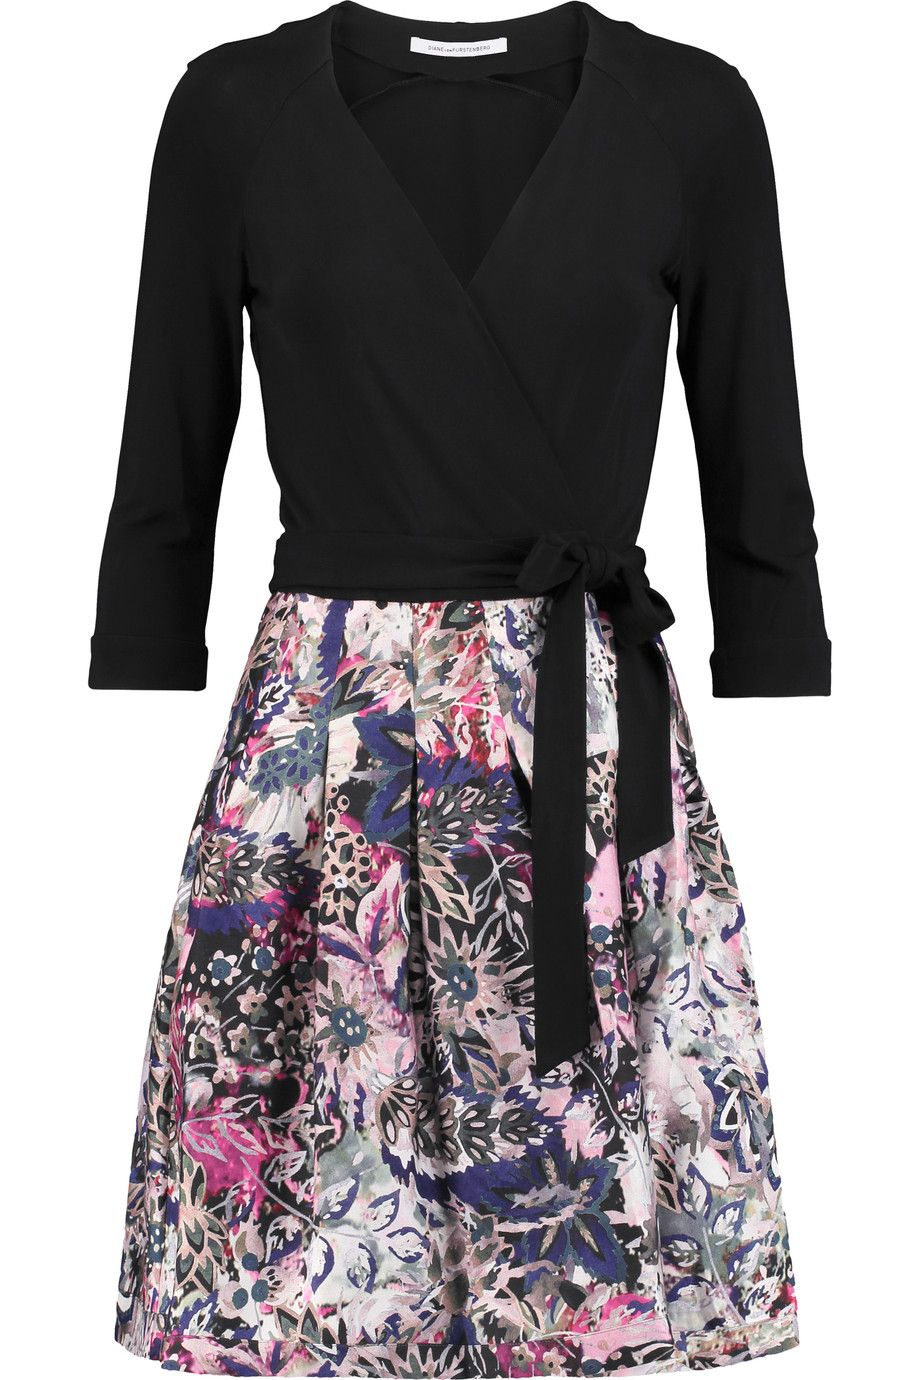 Floral-print Cotton And Silk-blend Wrap Dress - Black Diane Von F</ototo></div>                                   <span></span>                               </div>             <div>                                     <div>                                             <div>                                                     <p>                                                           <small>                                 Buy direct SAVE! No Sales Tax to US Residents! FREE Priority shipping on US orders over $100!                             </small>                                                       </p>                                                 </div>                                         </div>                                     <div>                                             <div>                                                     <ul>                                                             <li>                                                               </li>                                                             <li>                                                                   <a href=